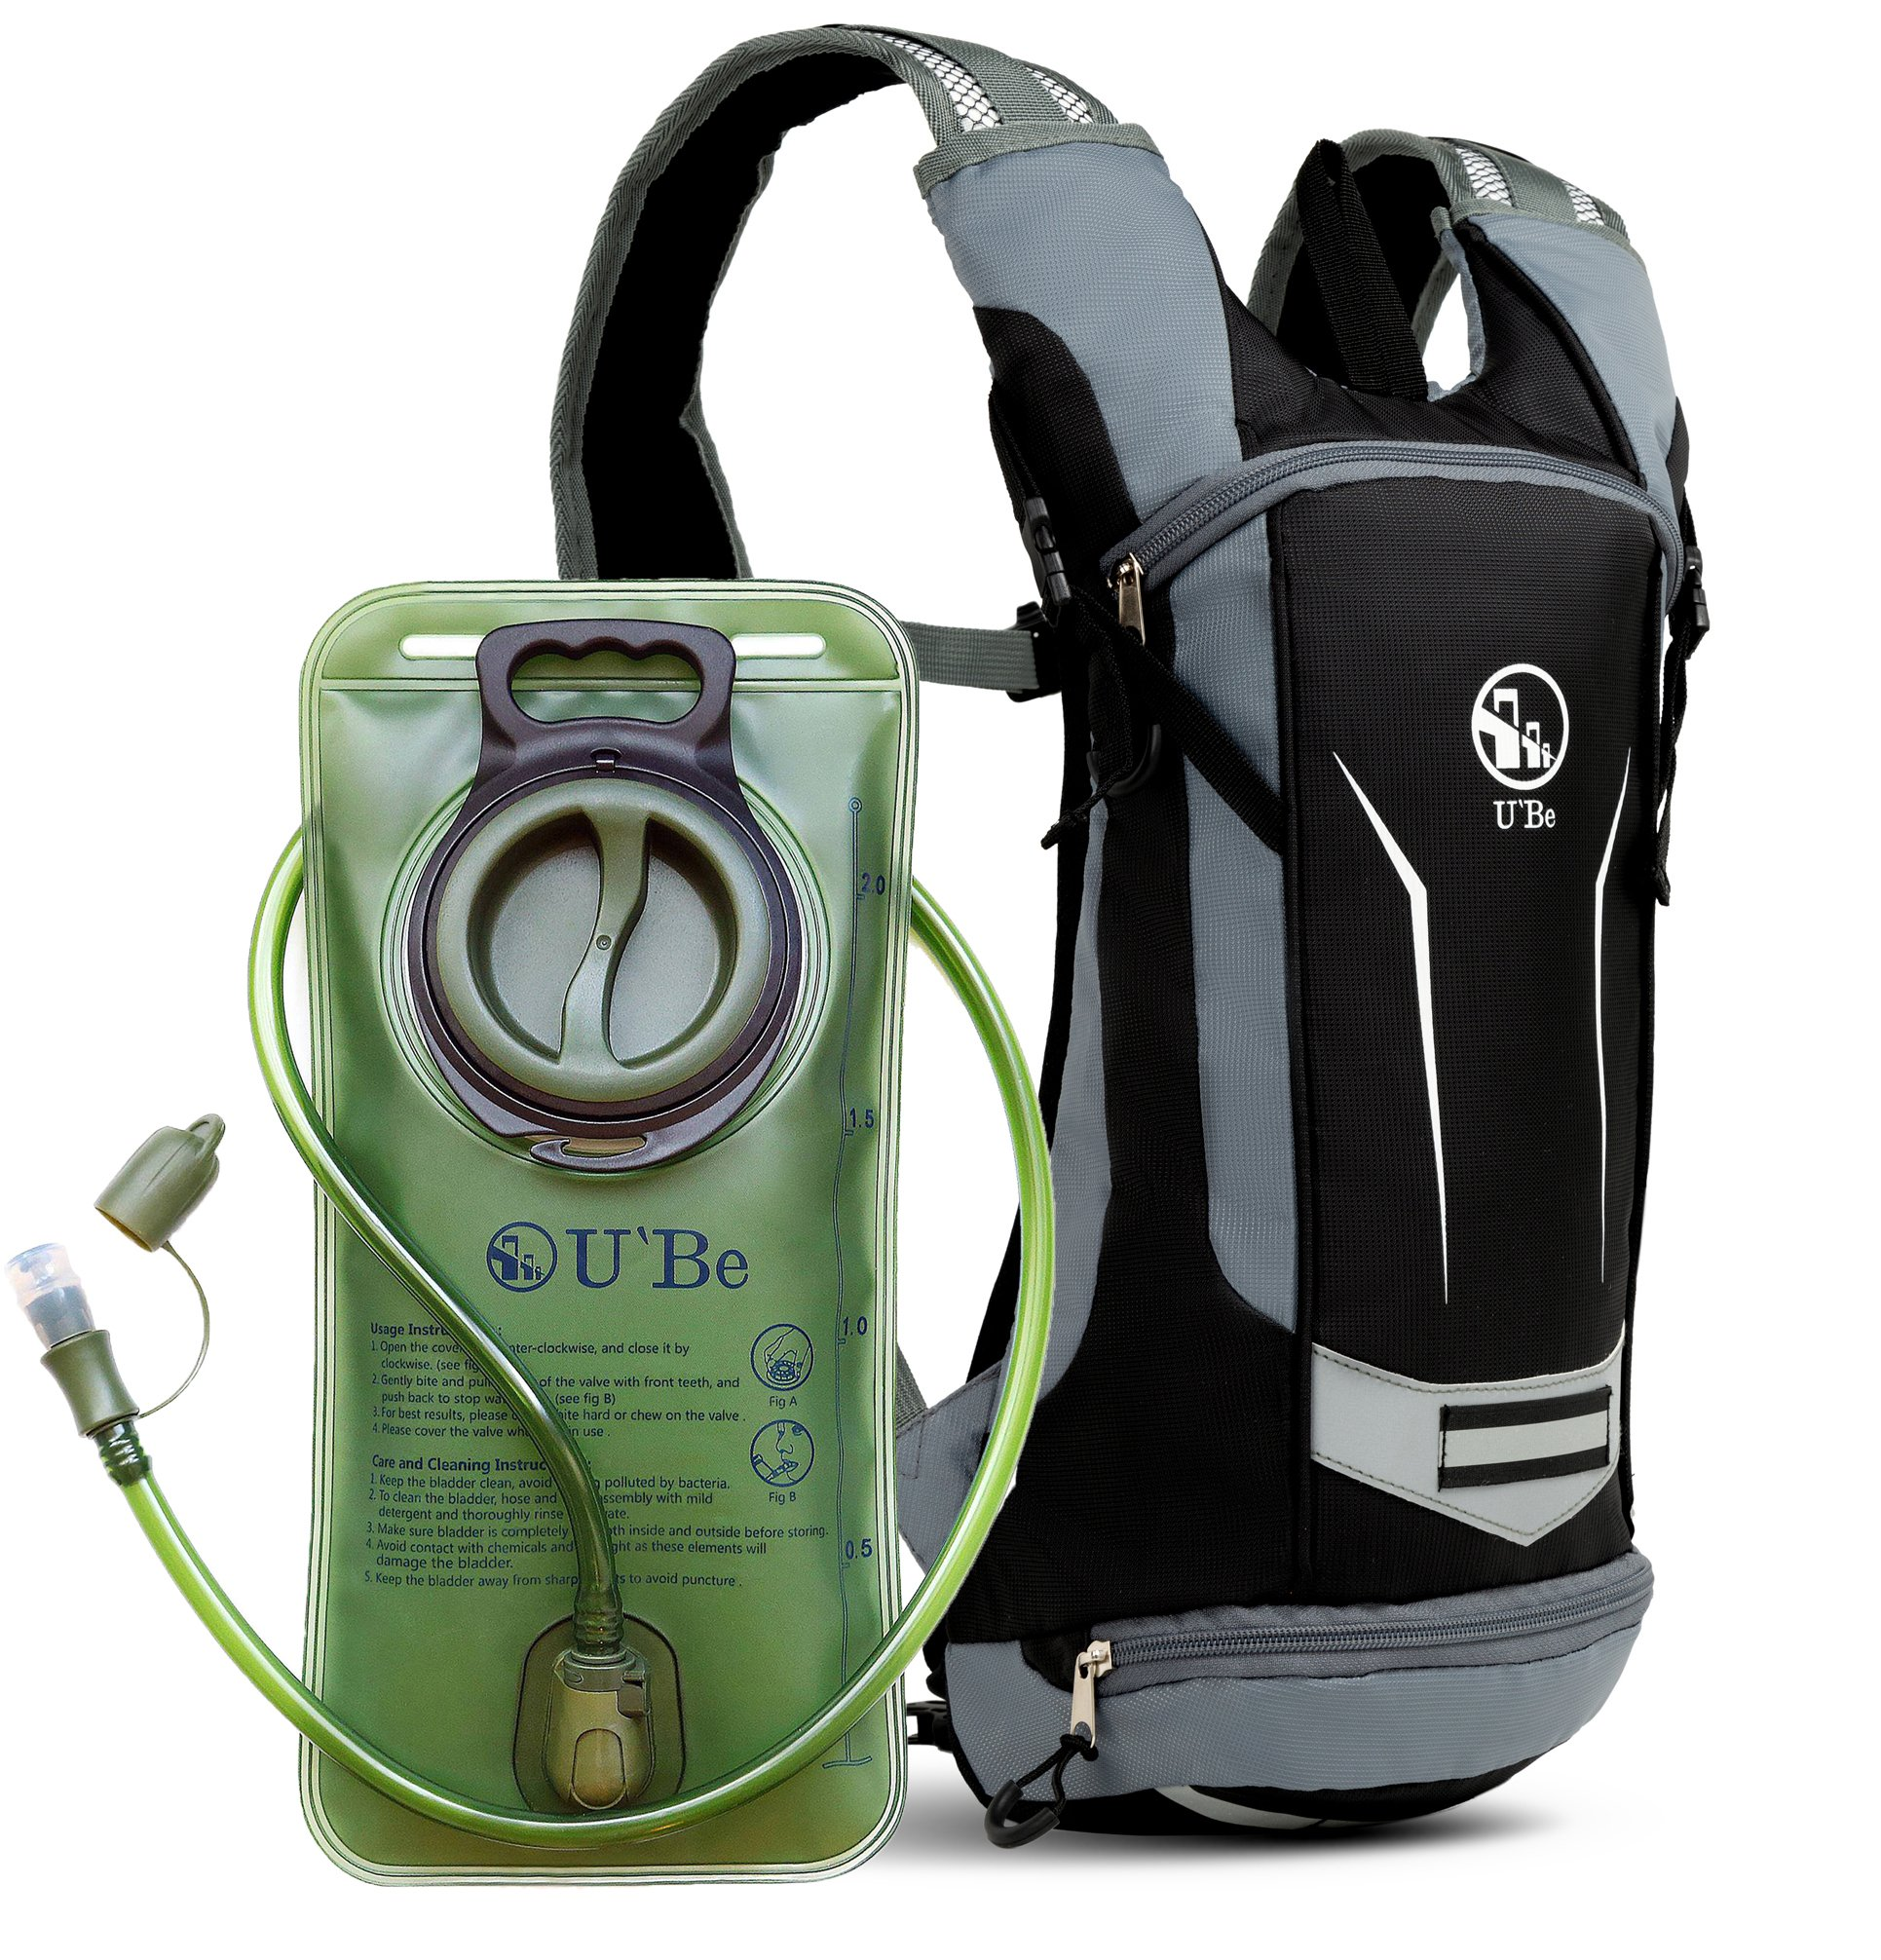 U`Be Hydration Pack - Hydration Backpack - Camel Pack Water Backpack with Insulated 2l Bladder for Women Men Kids Backpacking - Small Lightweight Water Reservoir for Running Hiking Cycling by U`Be